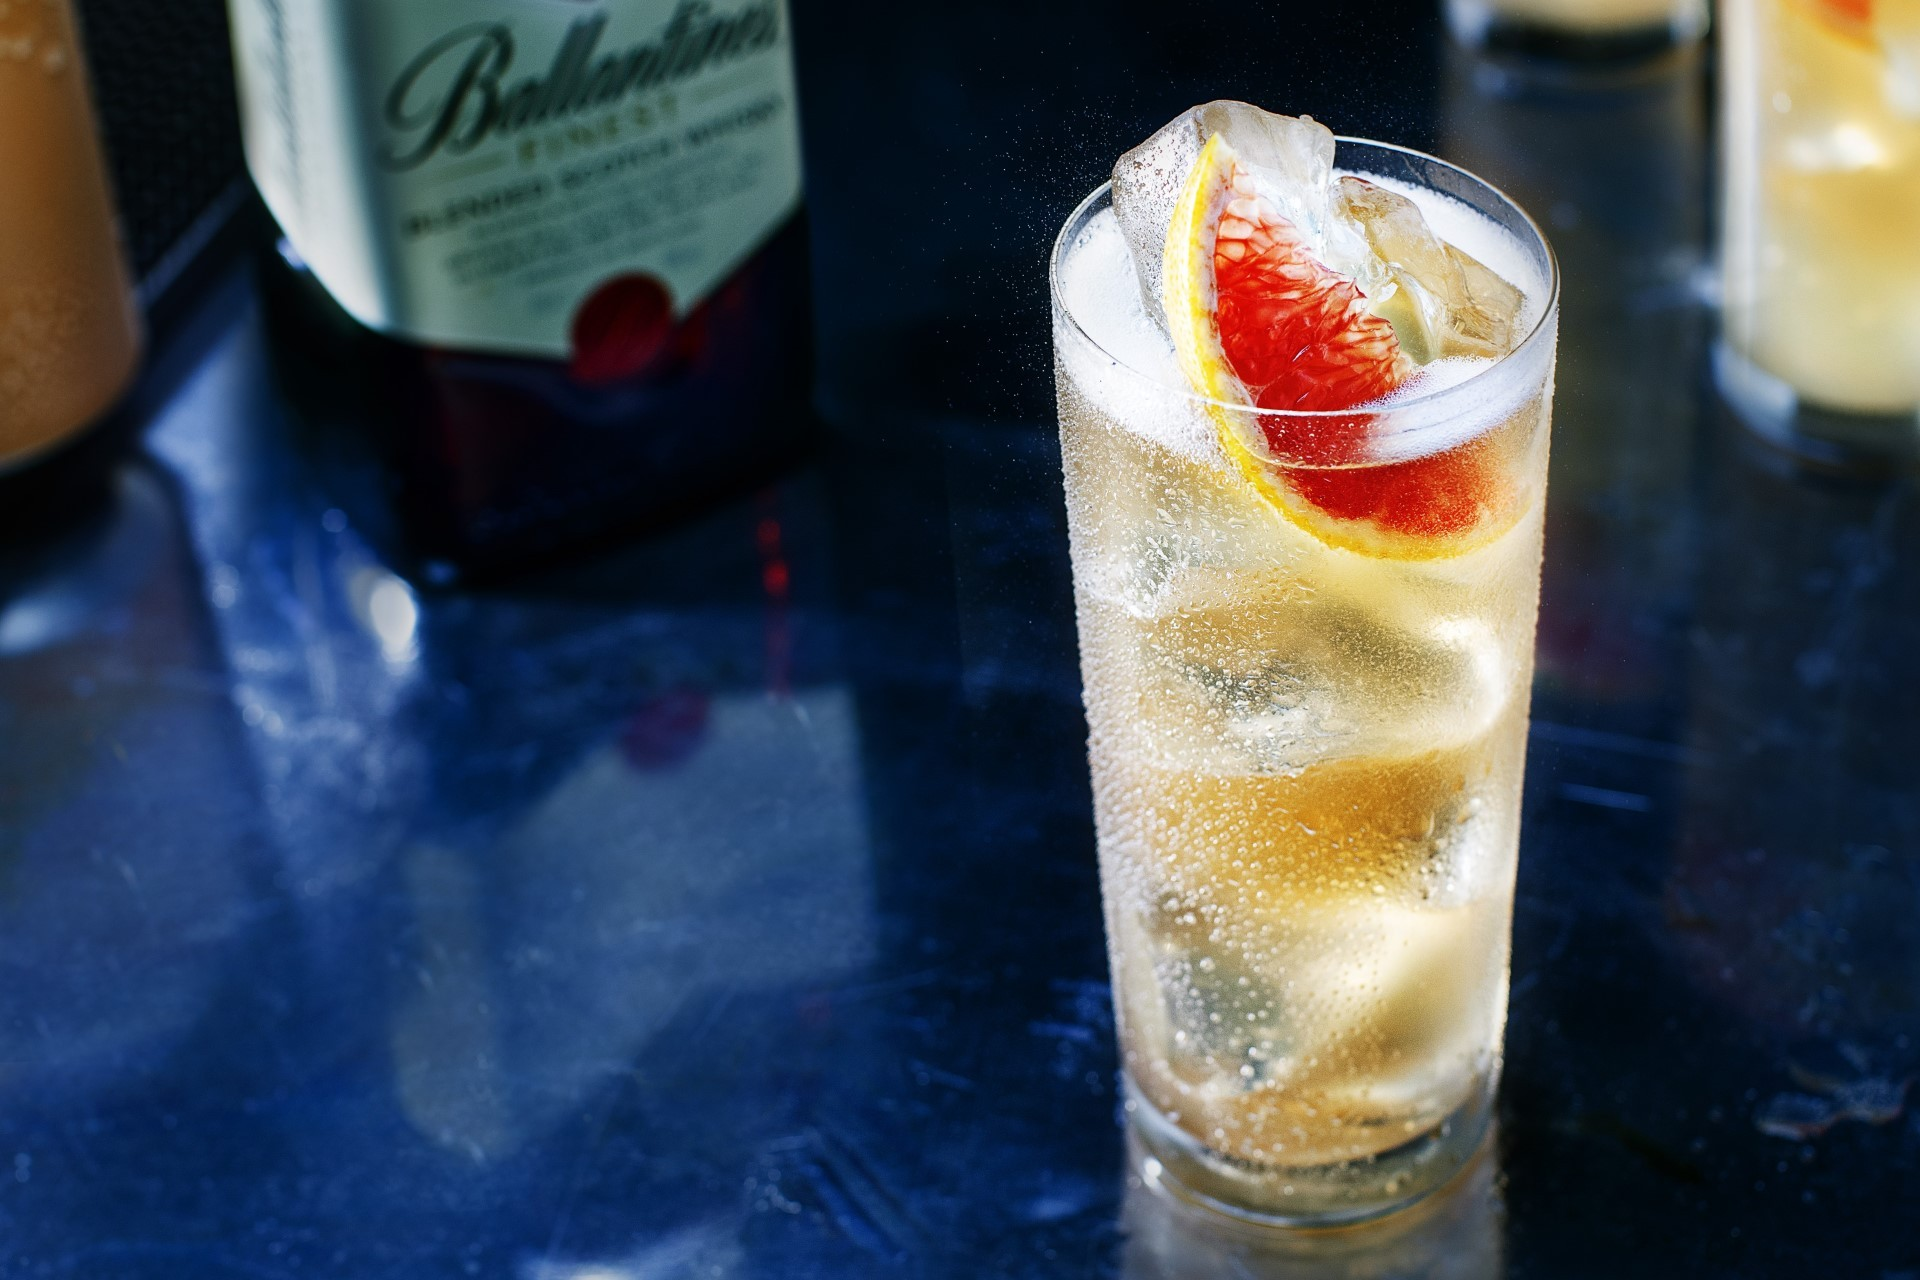 Ballantine's Finest Grapefruit Drink